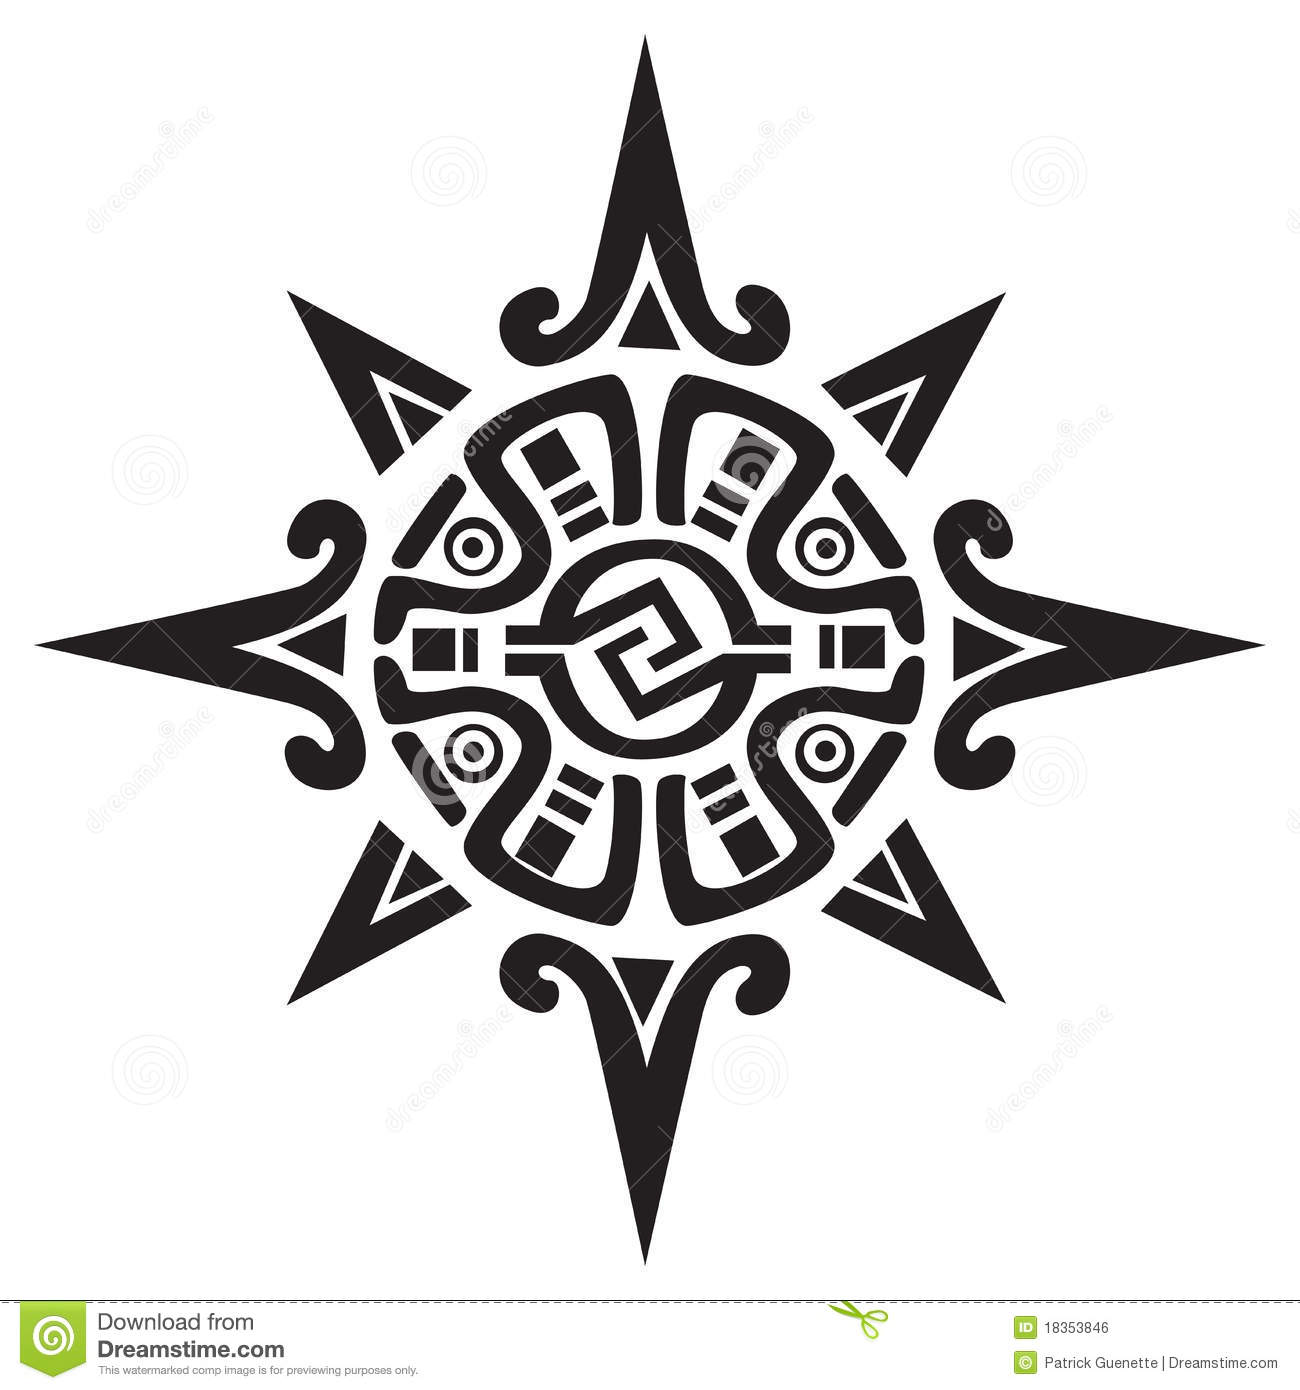 47f2471bc03eb Mayan or Incan symbol of a sun or star, isolated on white. Great for tattoo  or artwork